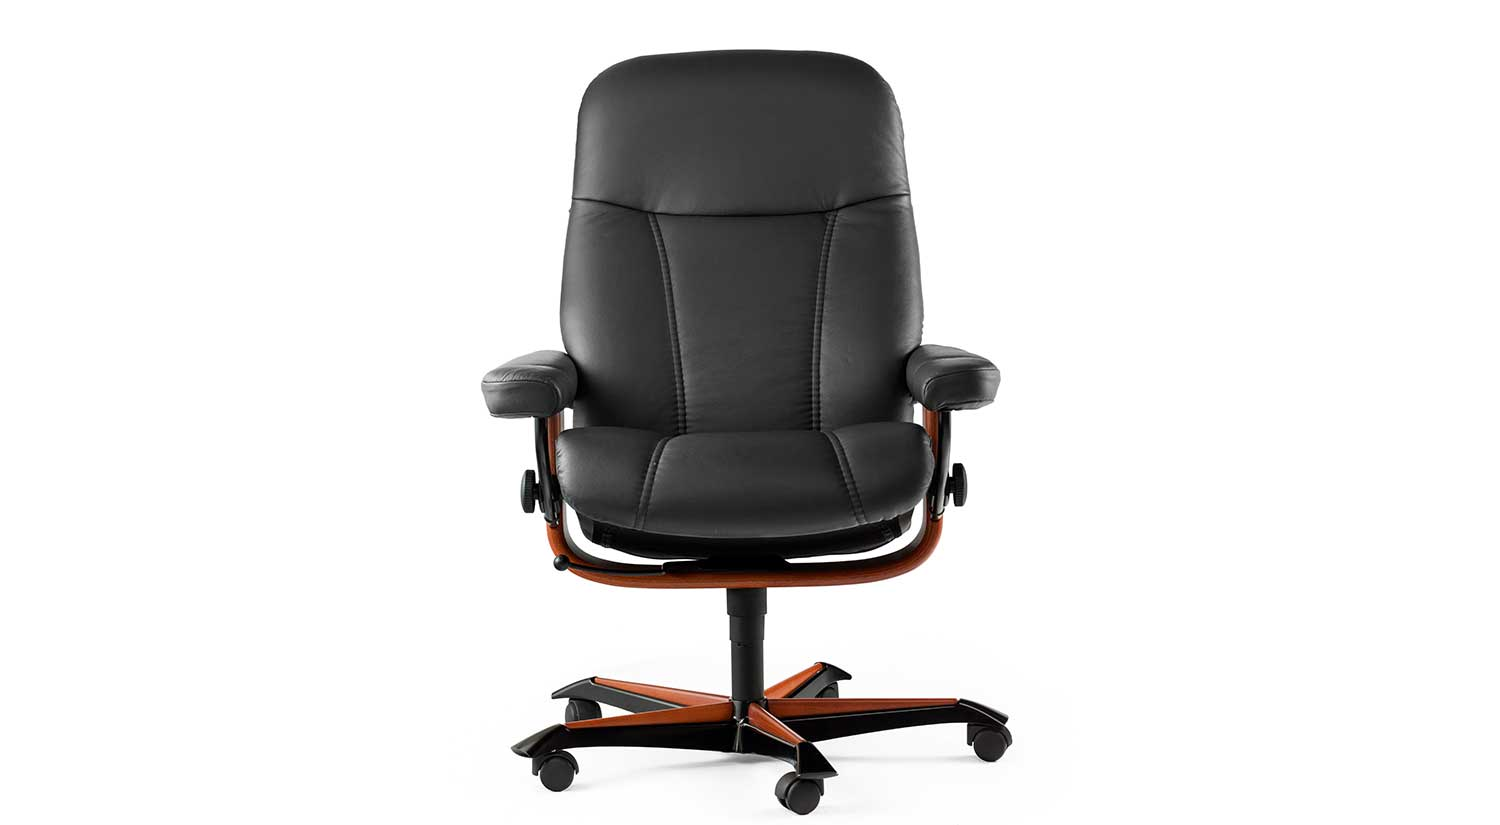 home office, office chair, desk chair